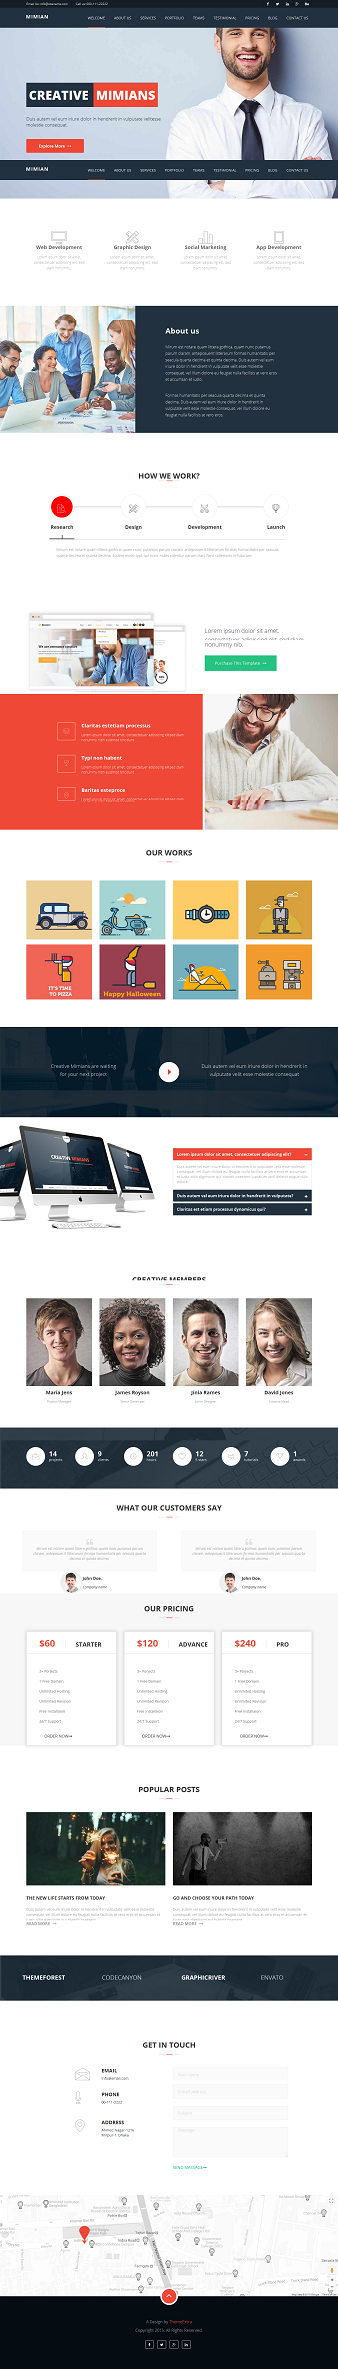 Mimian Multipurpose web template